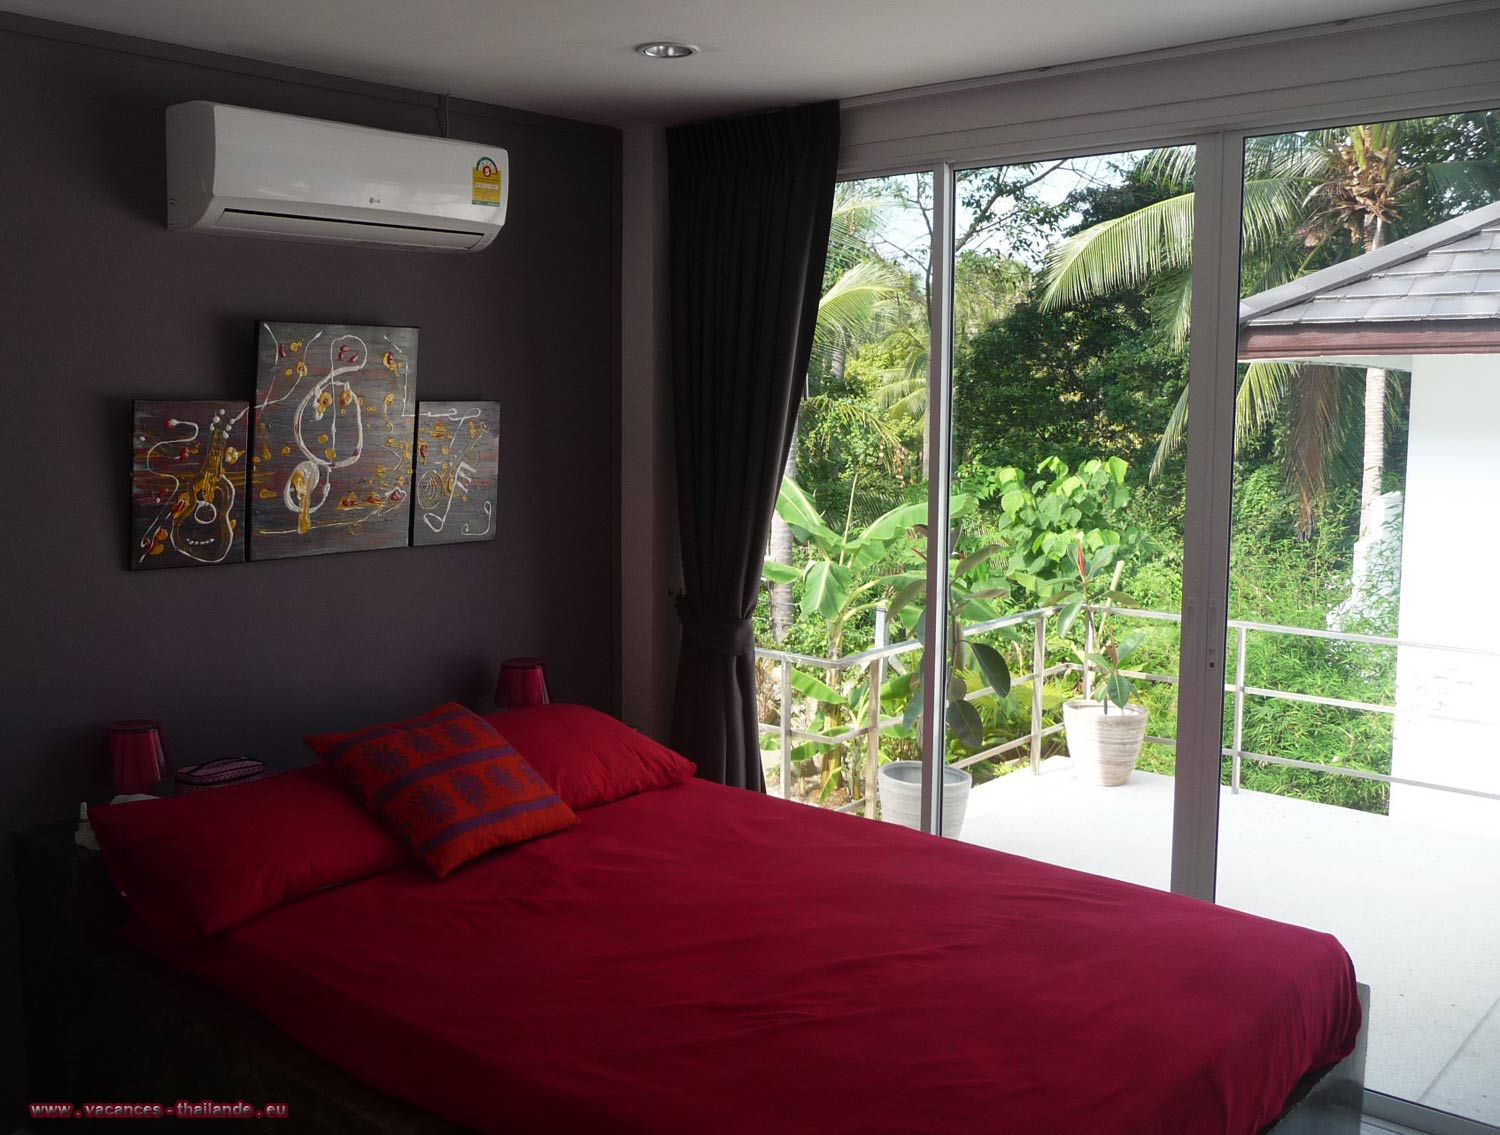 Photo 26 English grand large 1.50m bed, its Italian shower in Koh Samui, Suratthani, Thailand